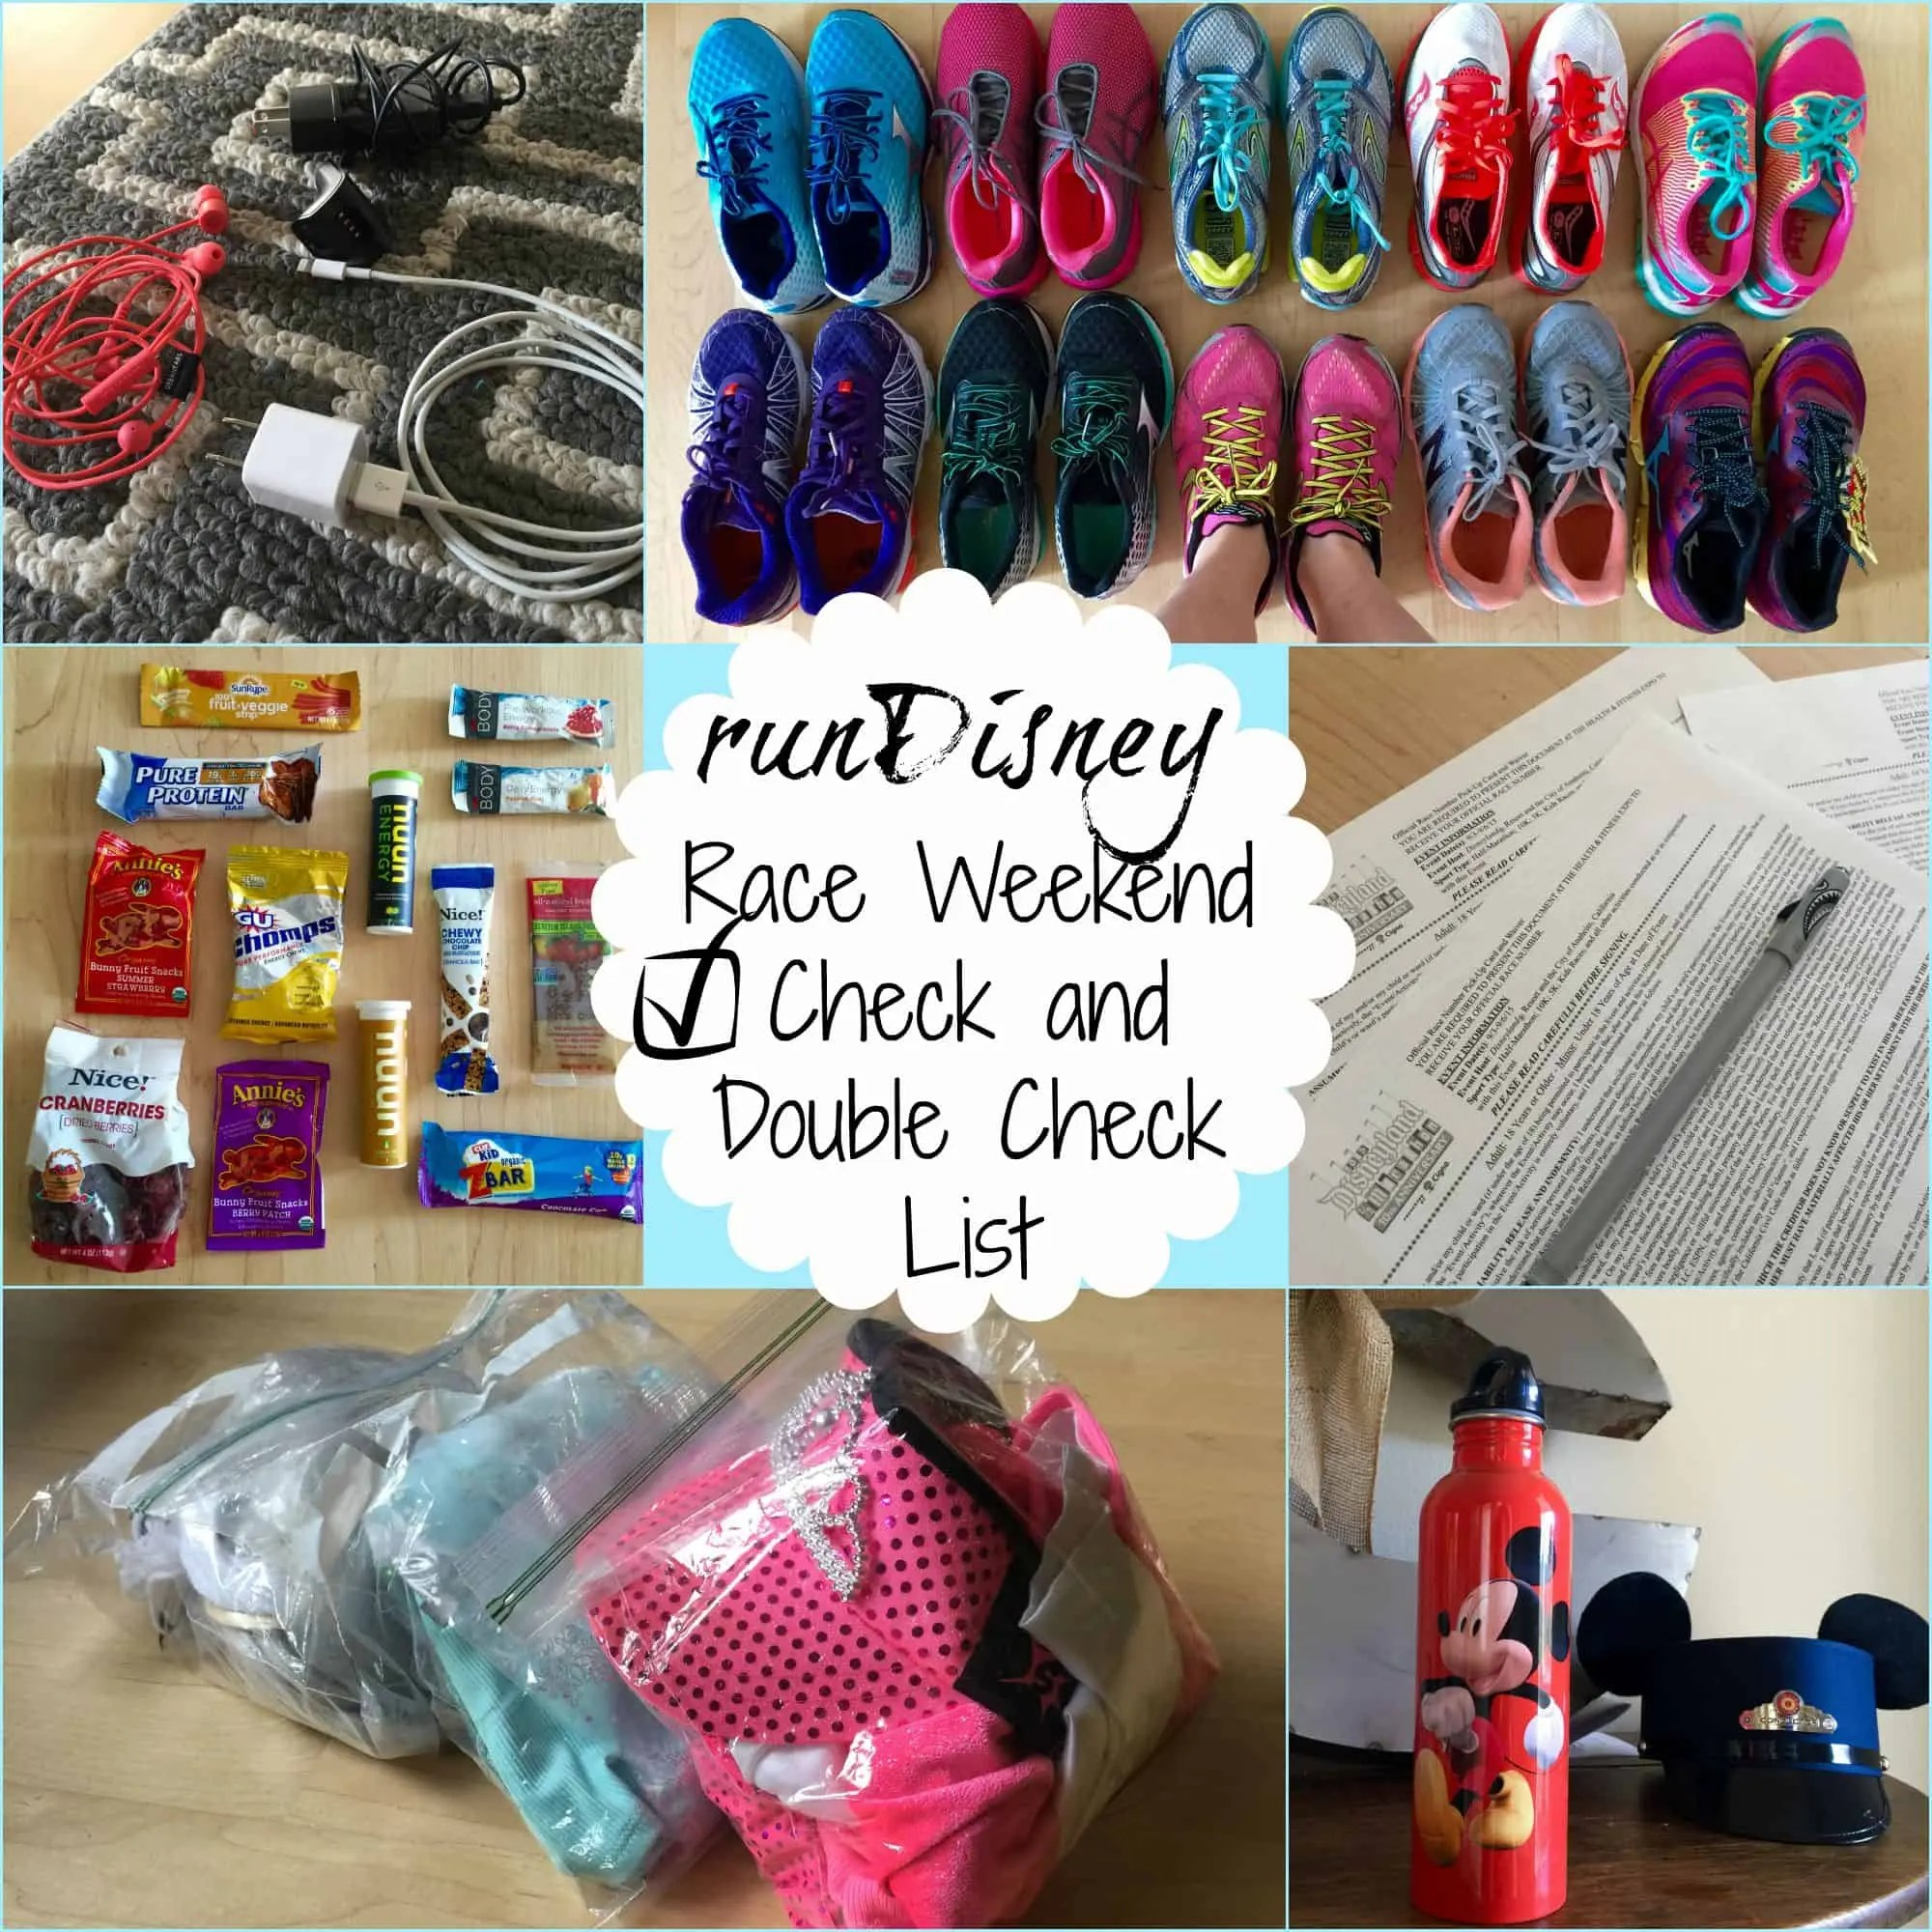 rundisney_check_list